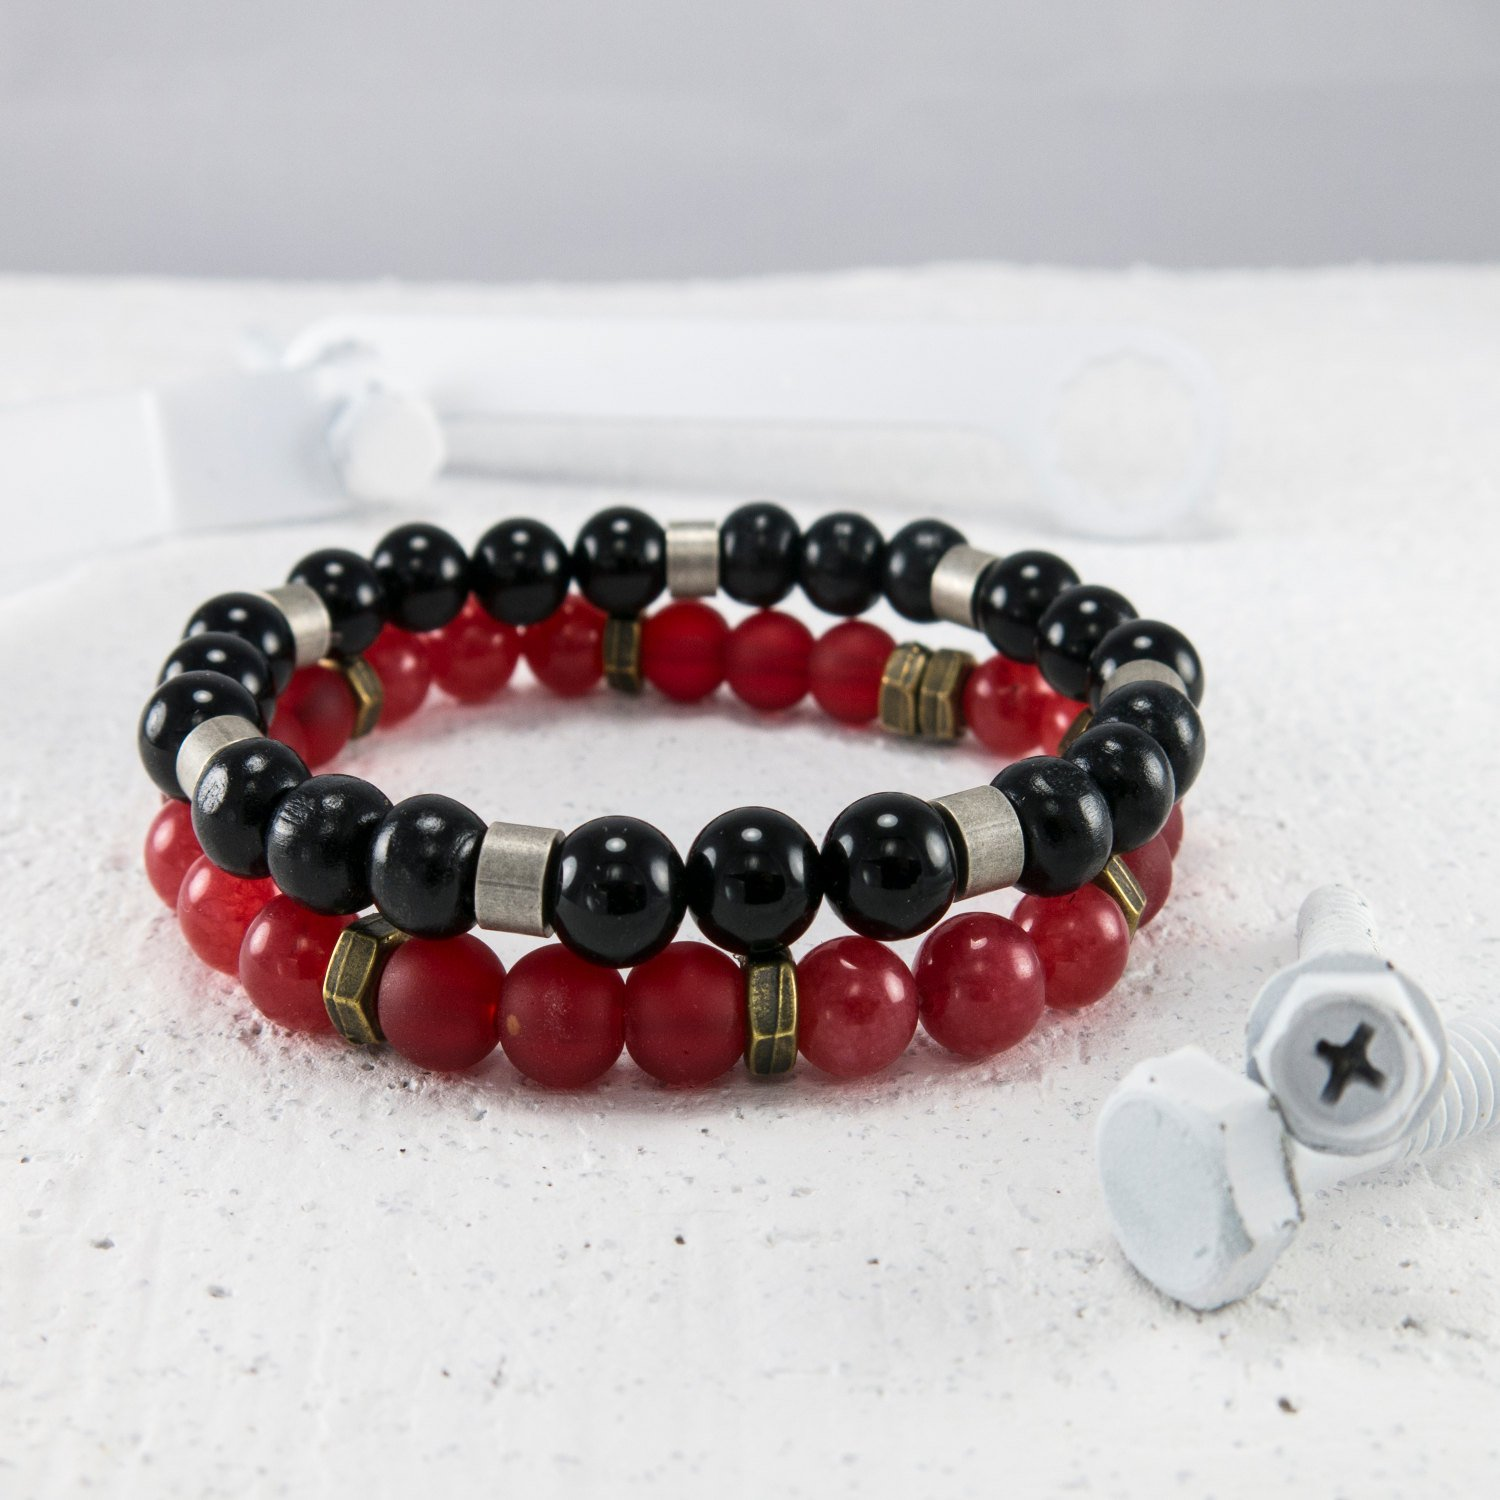 Men's Bracelet Set - Set of 2 Bracelets For Men - Men's Jewelry - Men's Beaded Bracelet